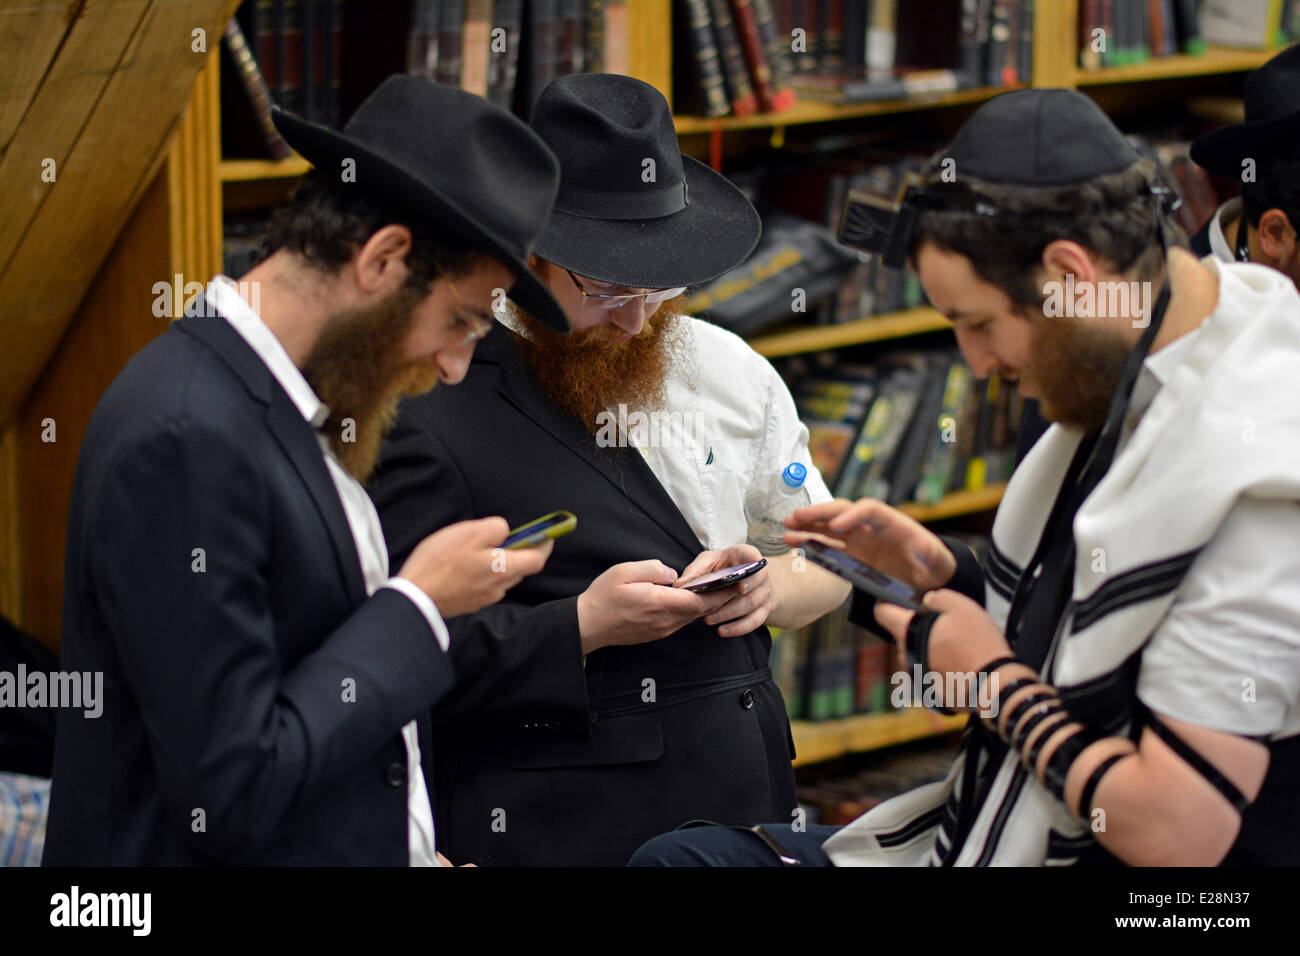 Three religious Jewish boys looking at their cell phones in the synagogue in Crown Heights, Brooklyn, New York - Stock Image